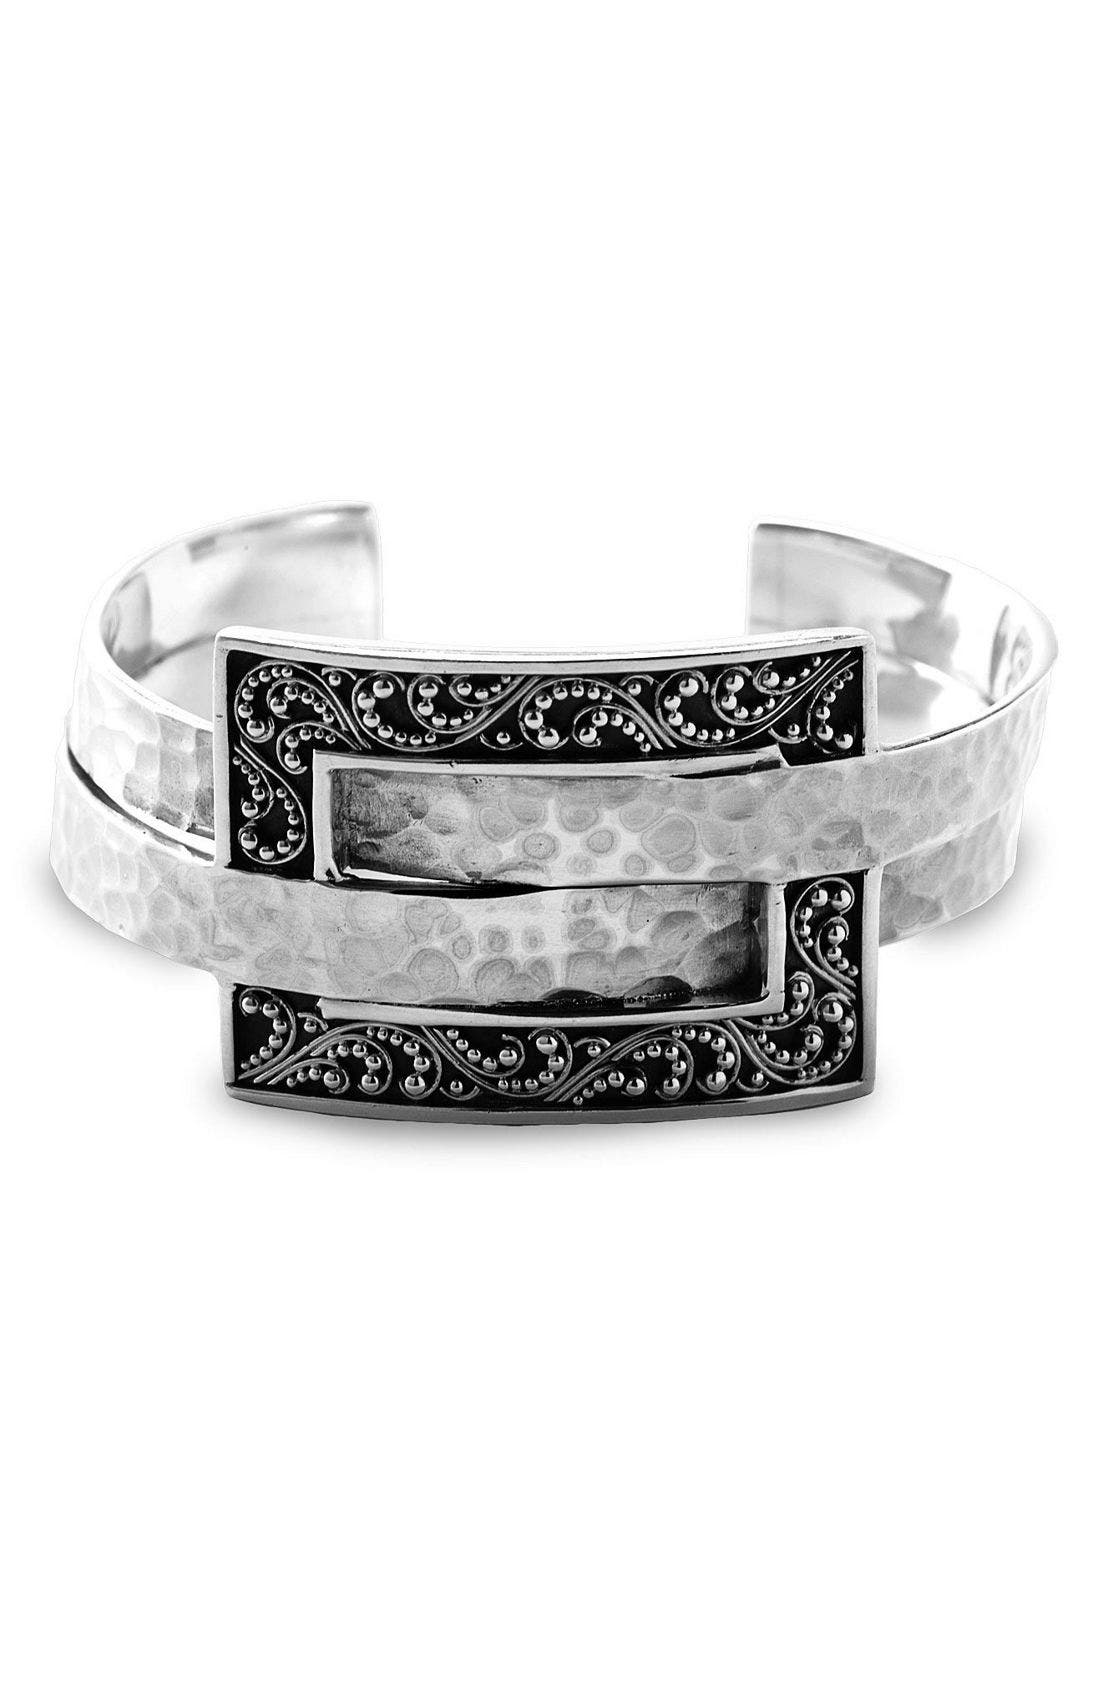 Alternate Image 1 Selected - Lois Hill 'Deco' Granulated & Hammered Bangle